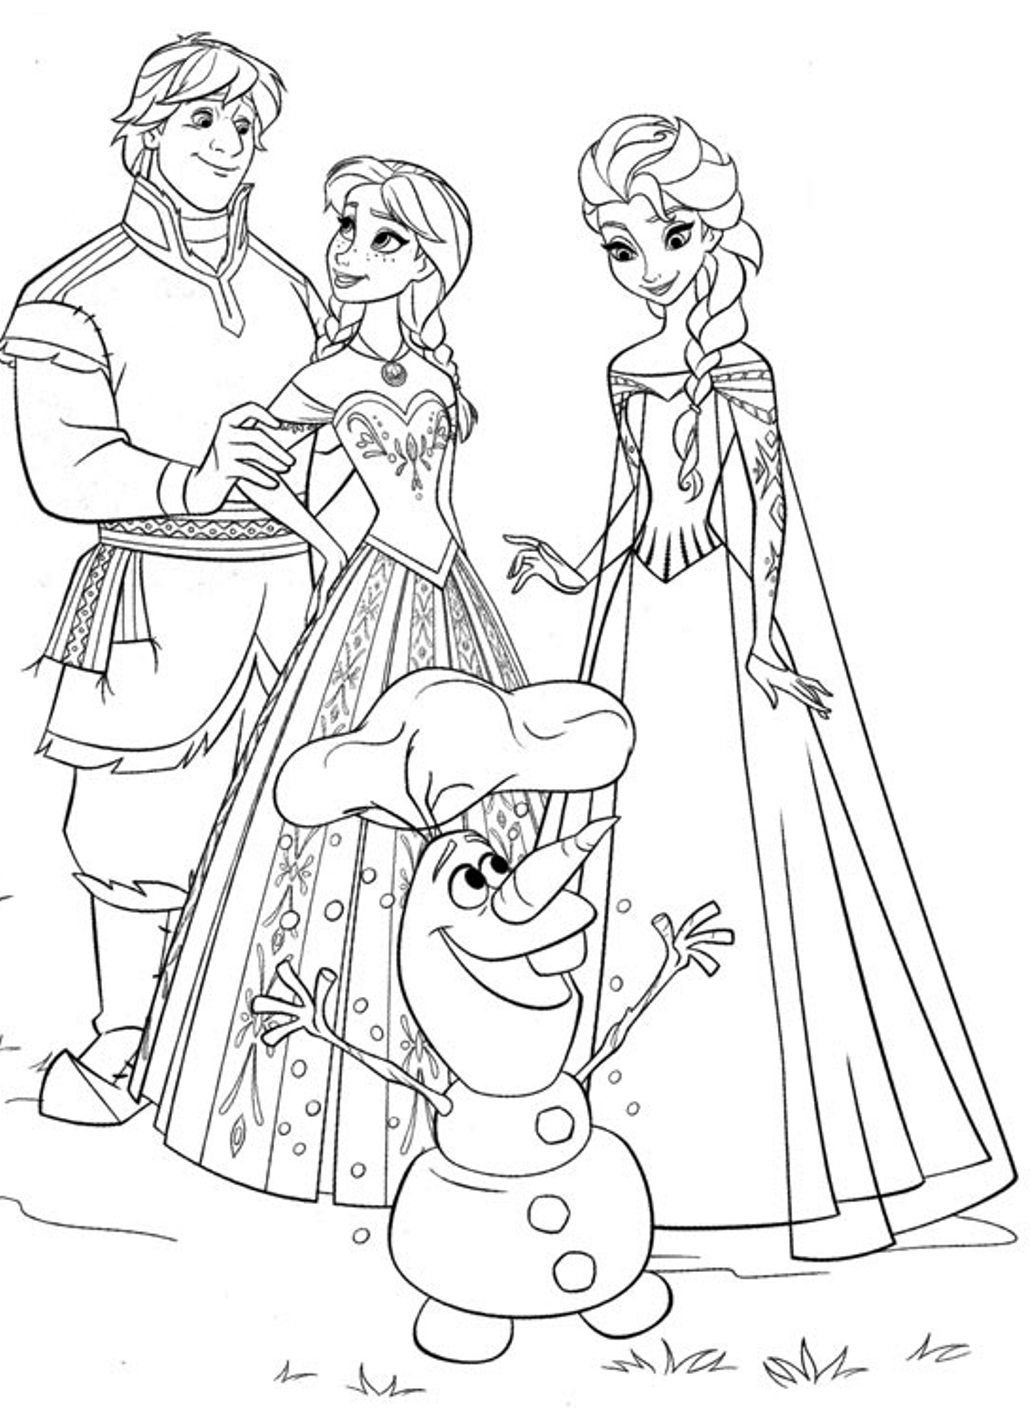 Coloring Pages Frozen Coloring Pages Wallpapers Hd Kids Coloring Books Disney Coloring Pages Frozen Coloring Pages